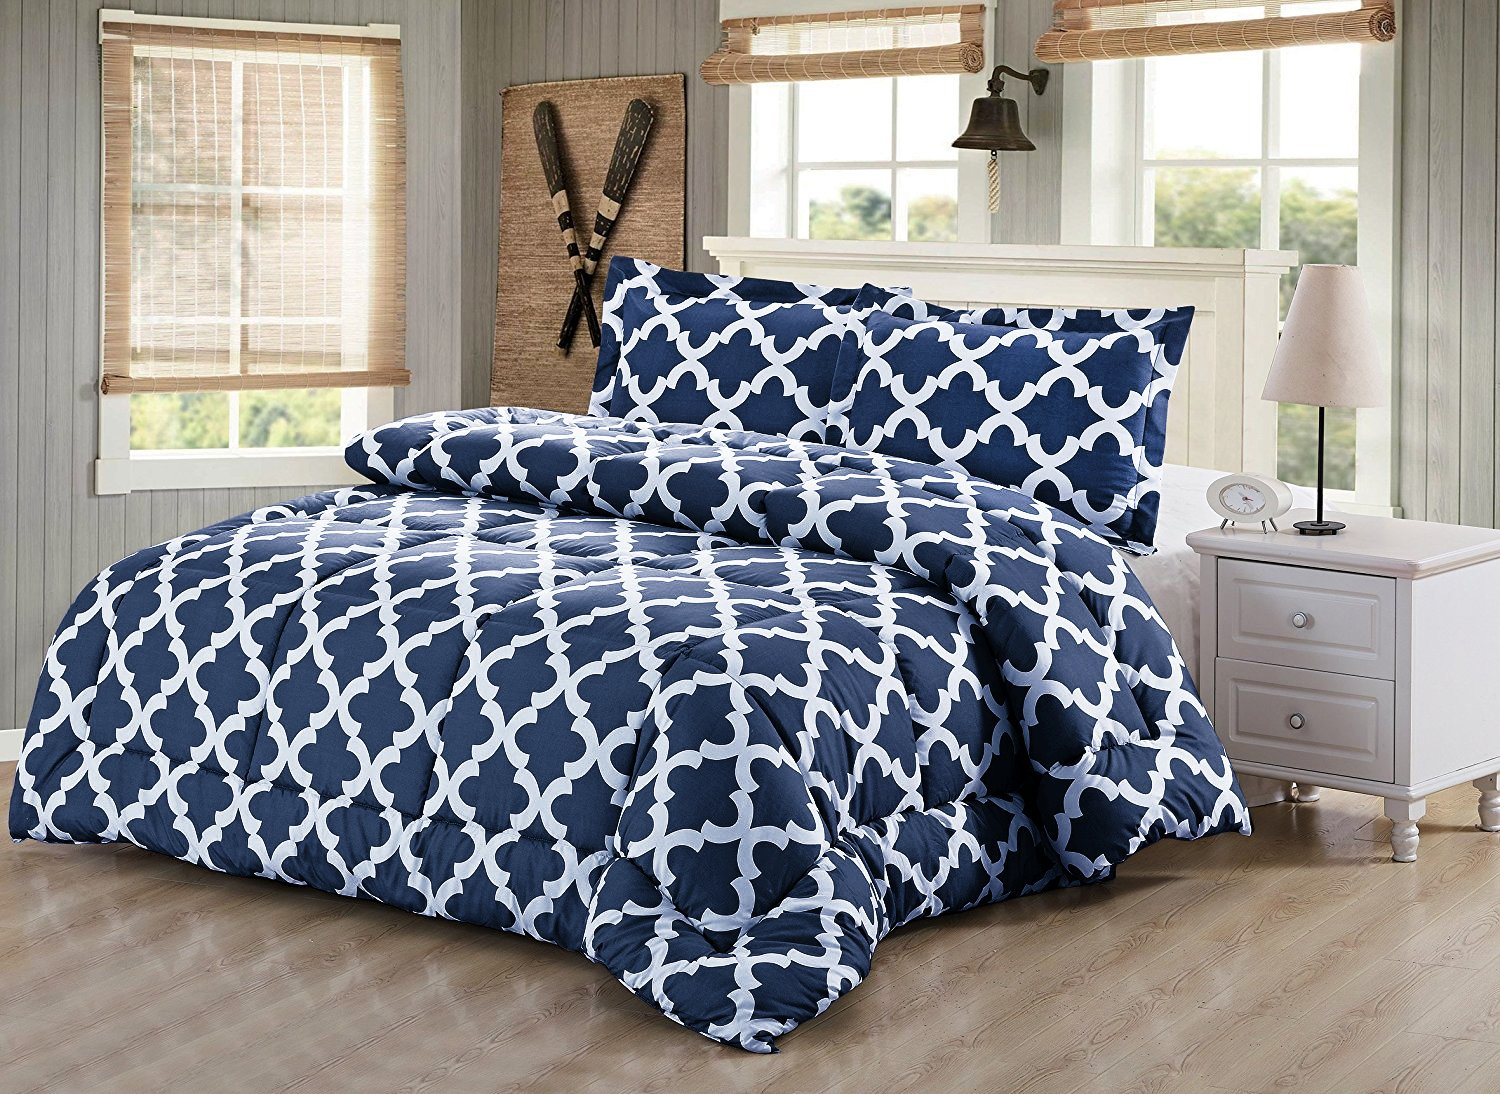 Utopia Bedding Printed Comforter Set Goose Down Alternative Comforter